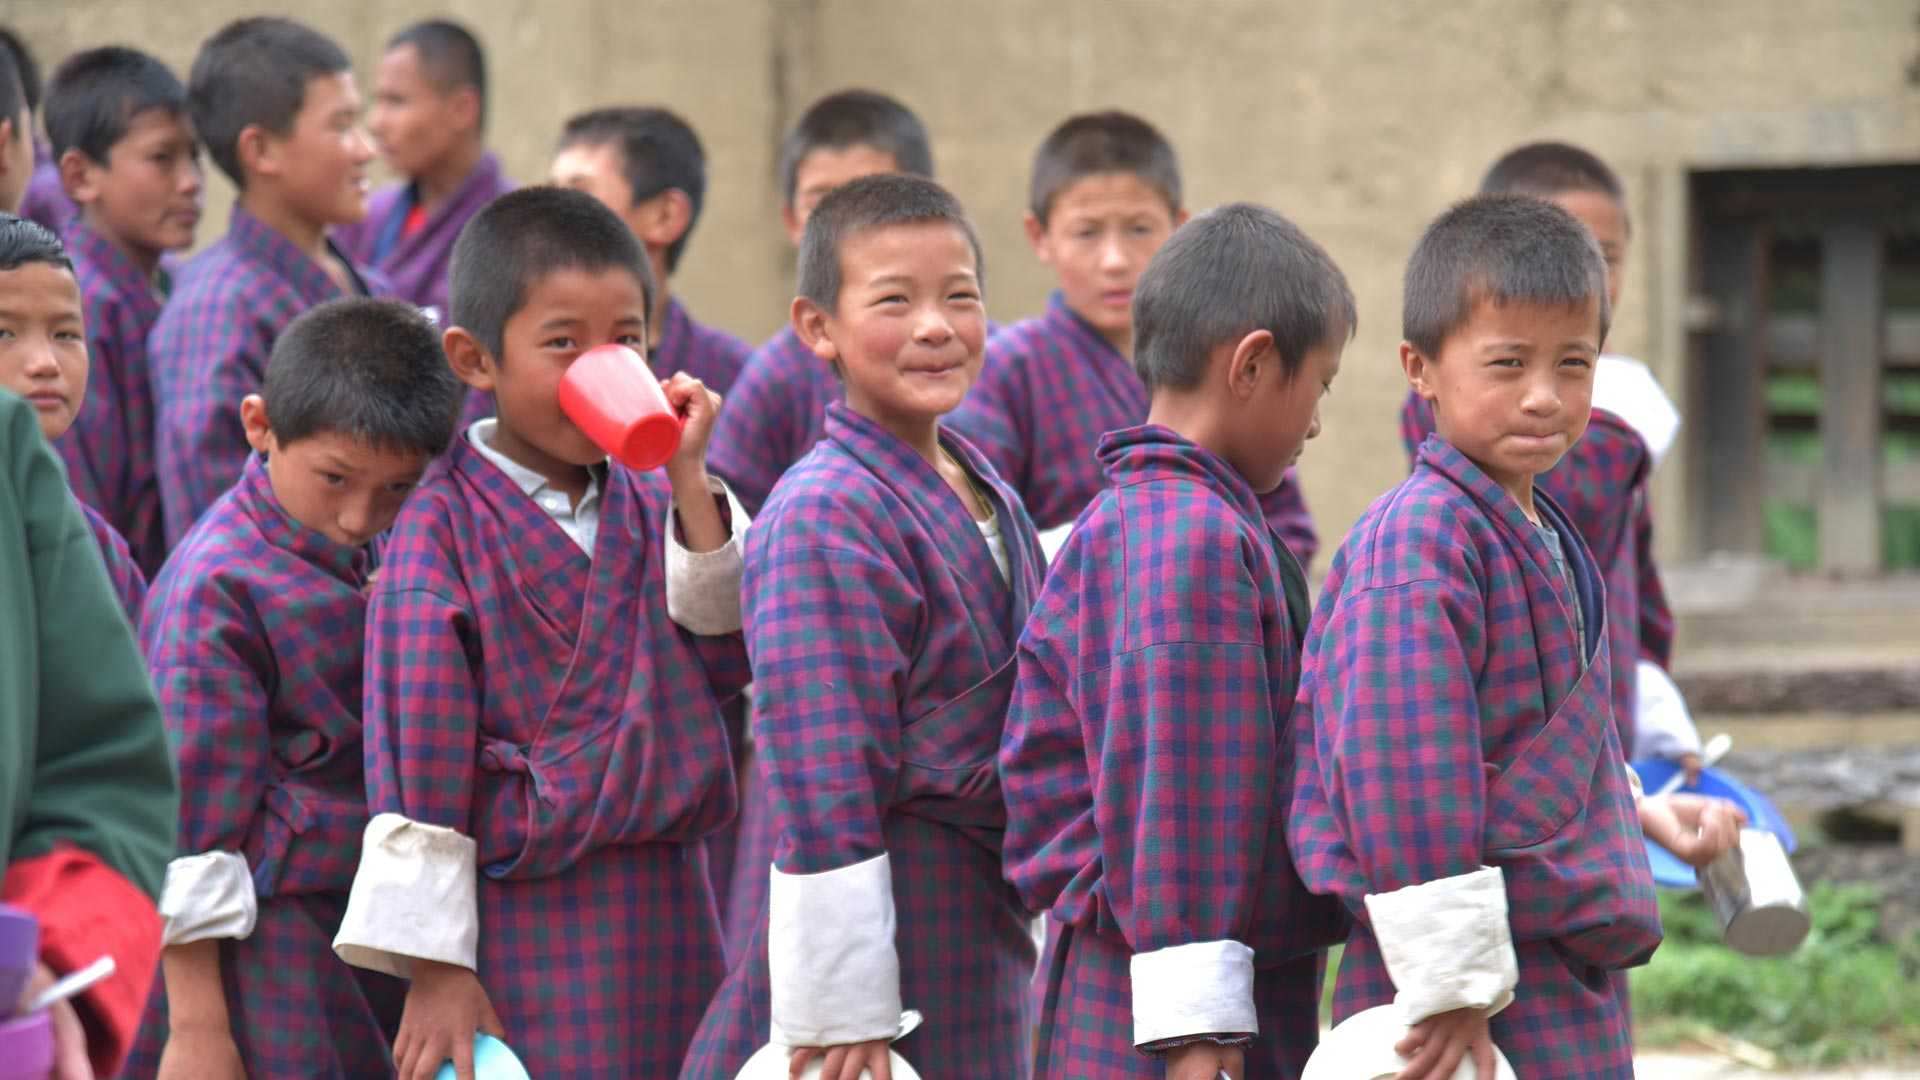 Pupils from Bhutan queuing for meal